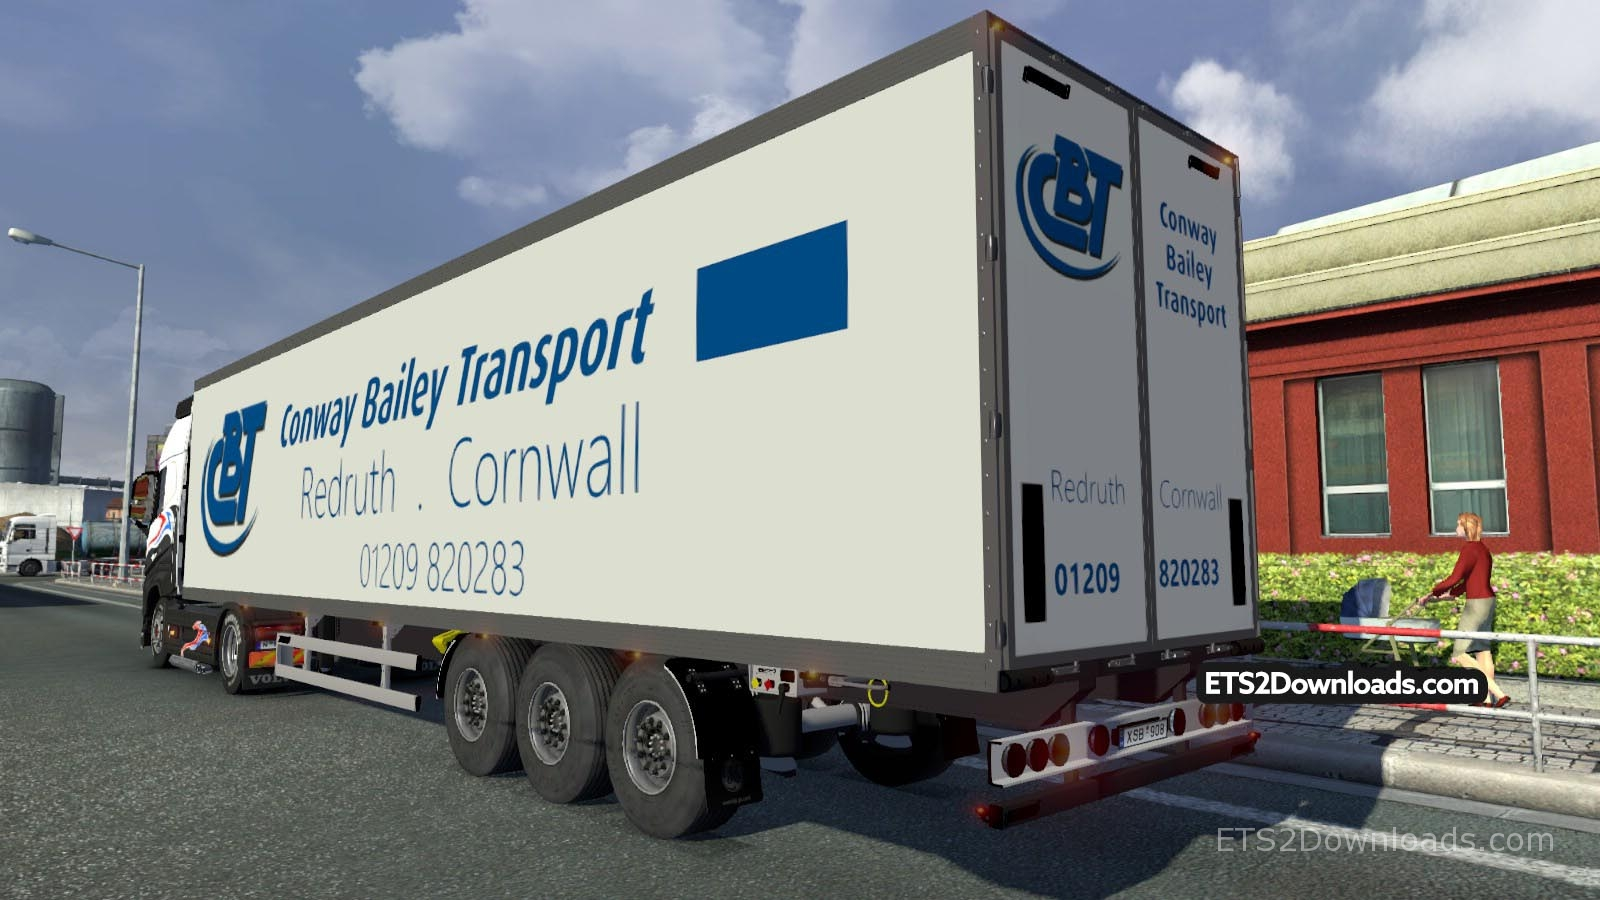 conway-bailey-transport-trailer-1